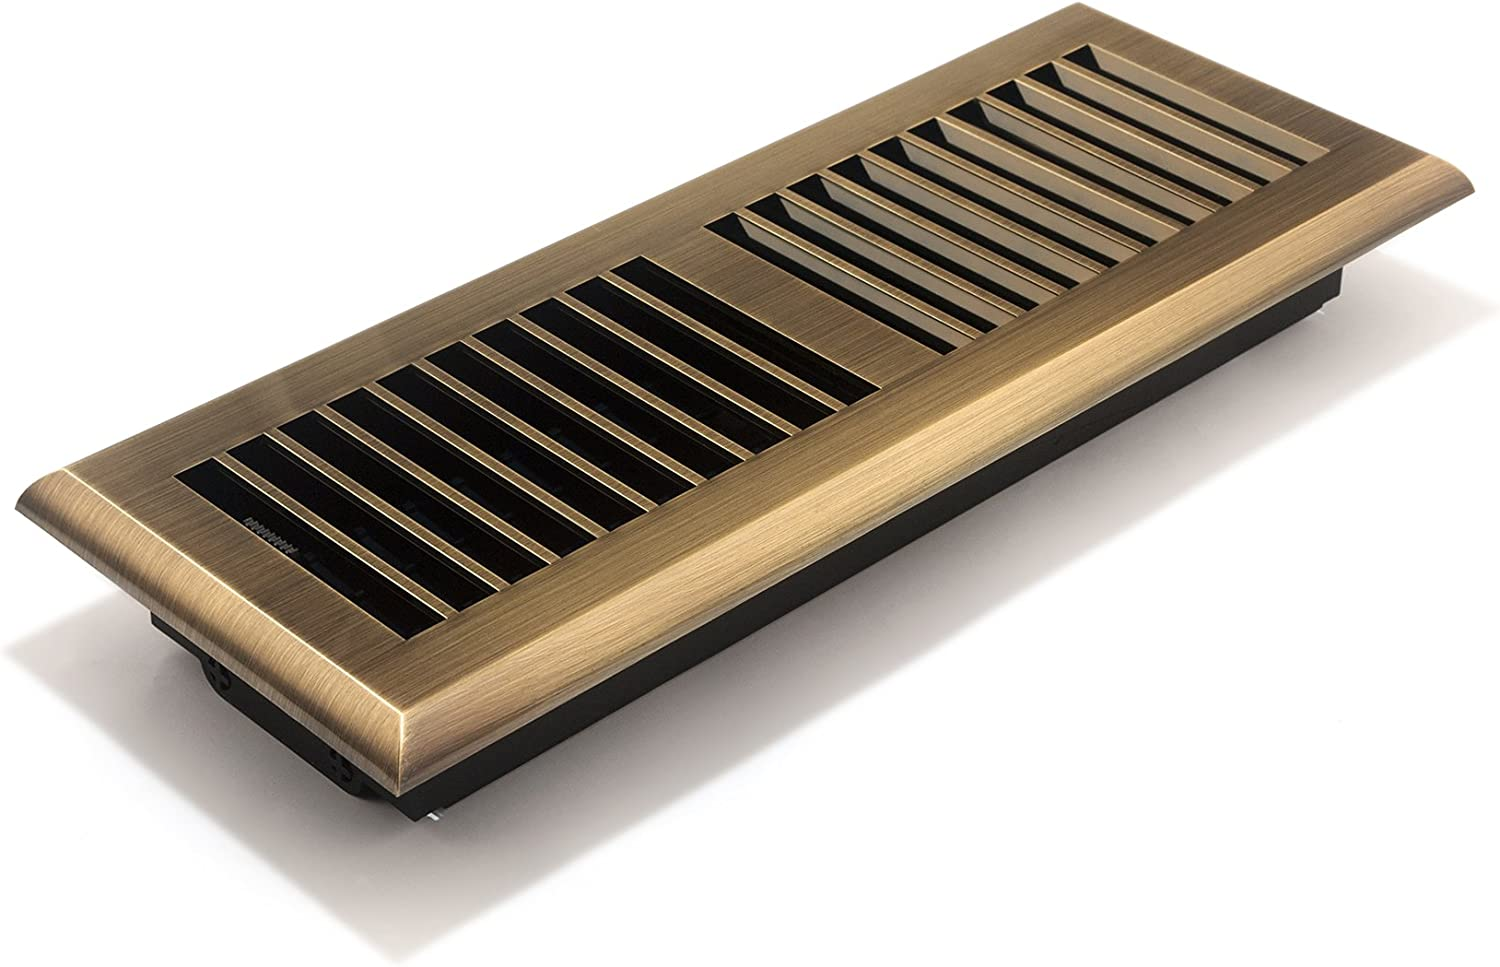 Accord APFRABL412 Plastic Floor Register With Louvered Design, 4-Inch X 12-Inch(Duct Opening Measurements), Antique Brass Finish - Heating Vents - Amazon.com